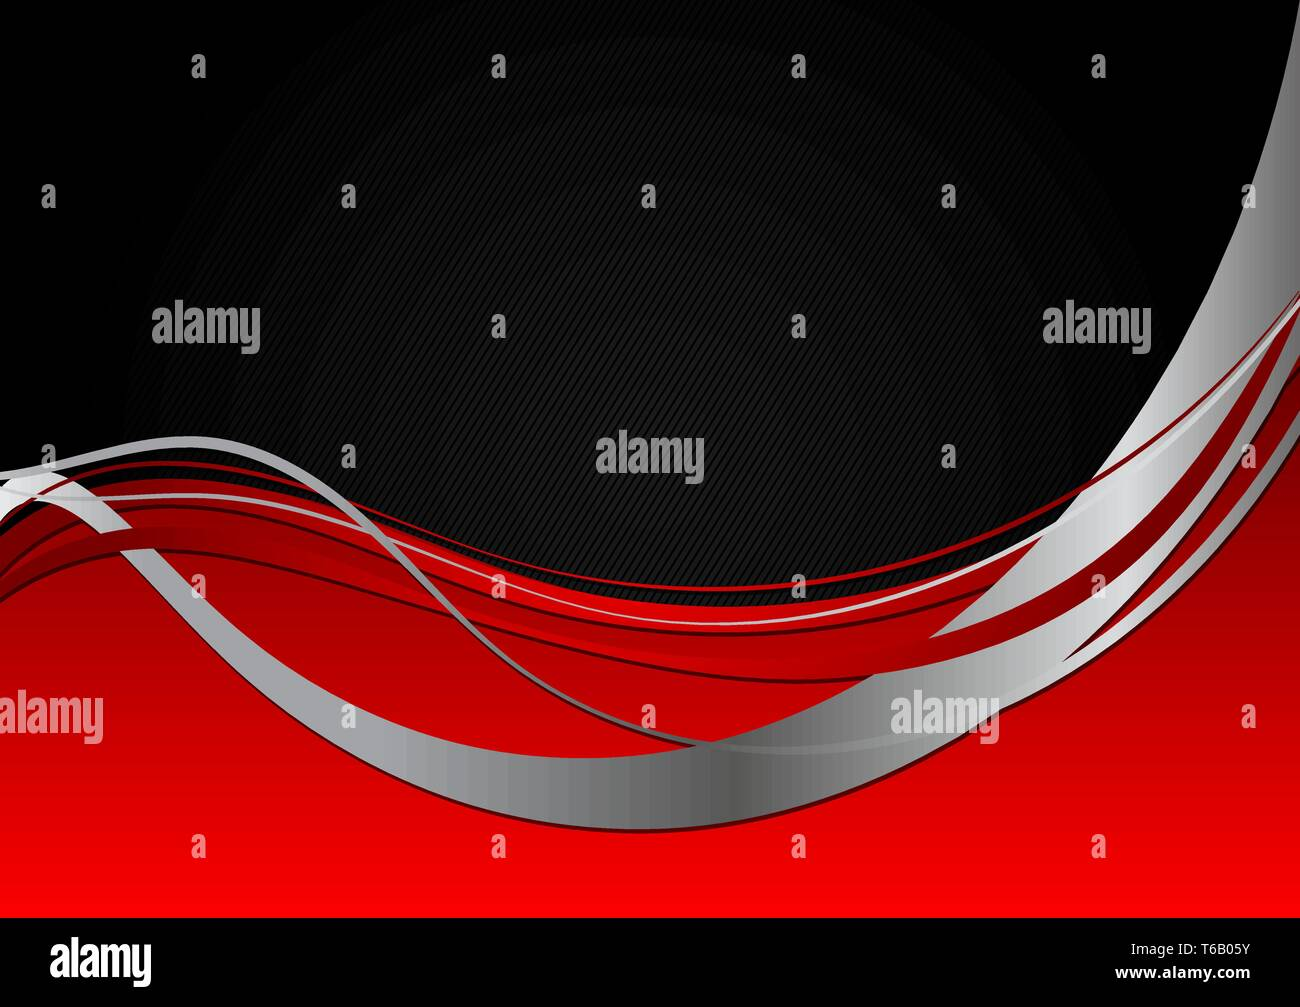 Red And Black Abstract Wave Wallpaper With Copy Space Vector